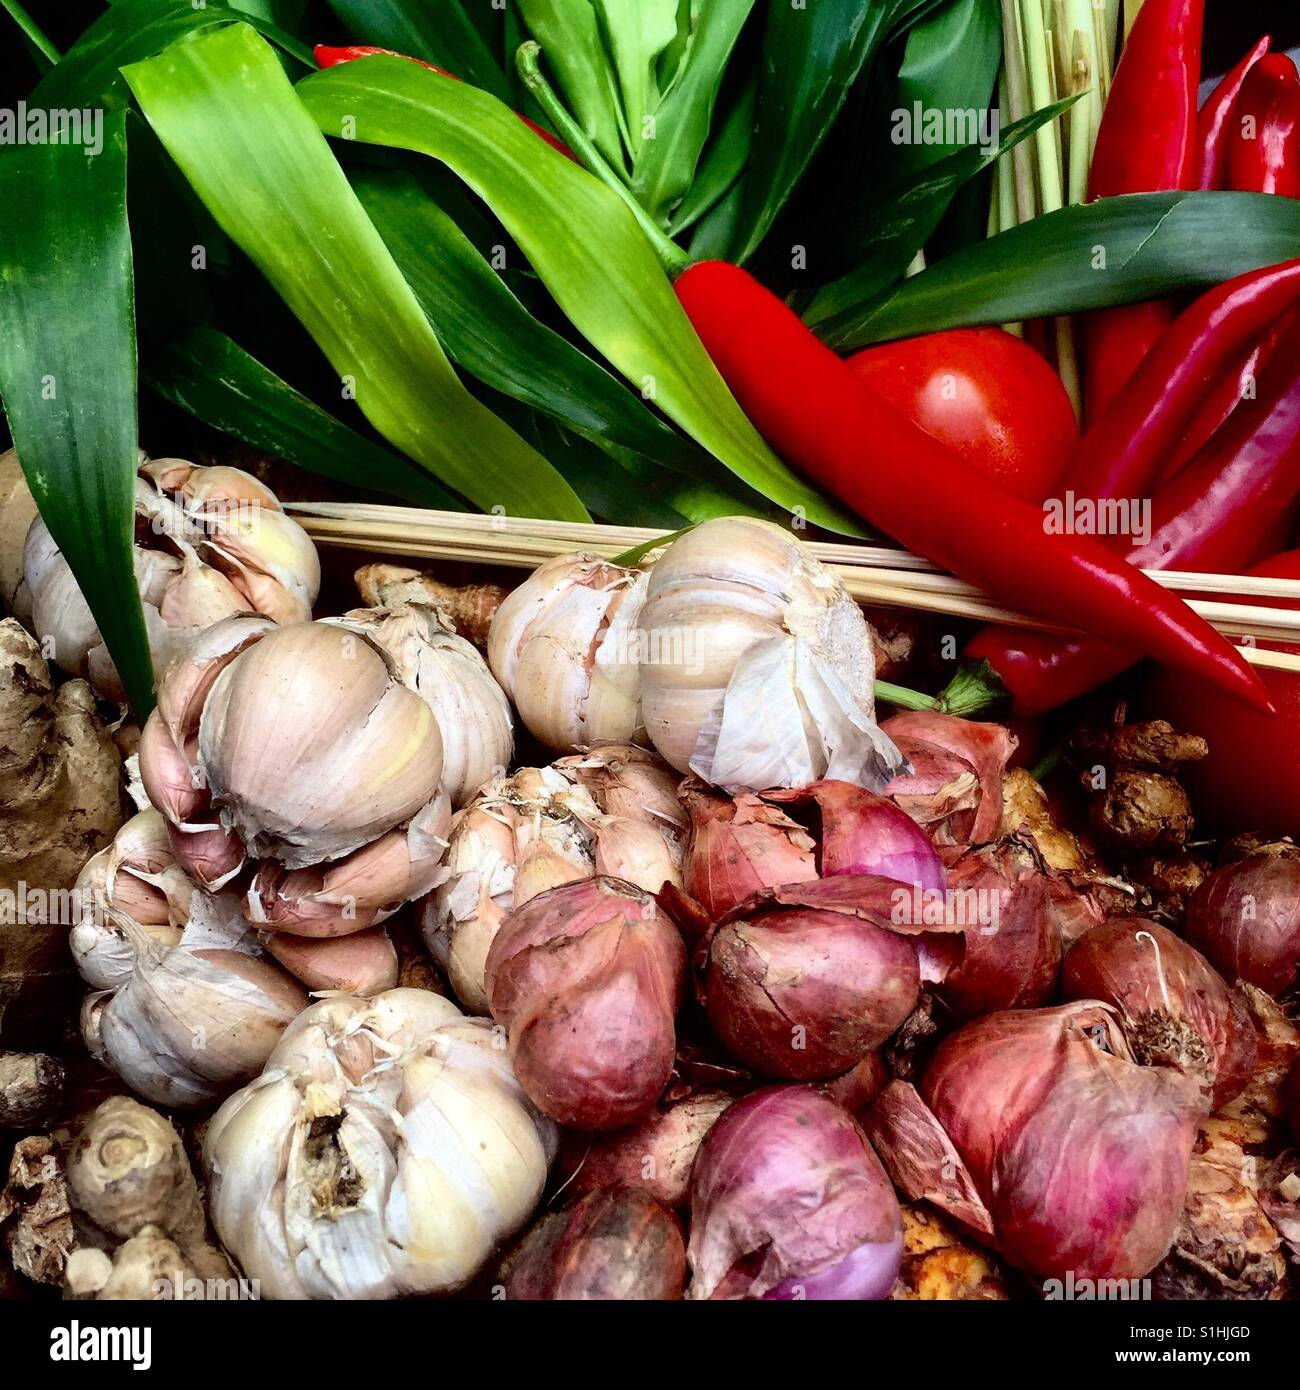 Fresh market vegetables Asian cooking essentials - Stock Image